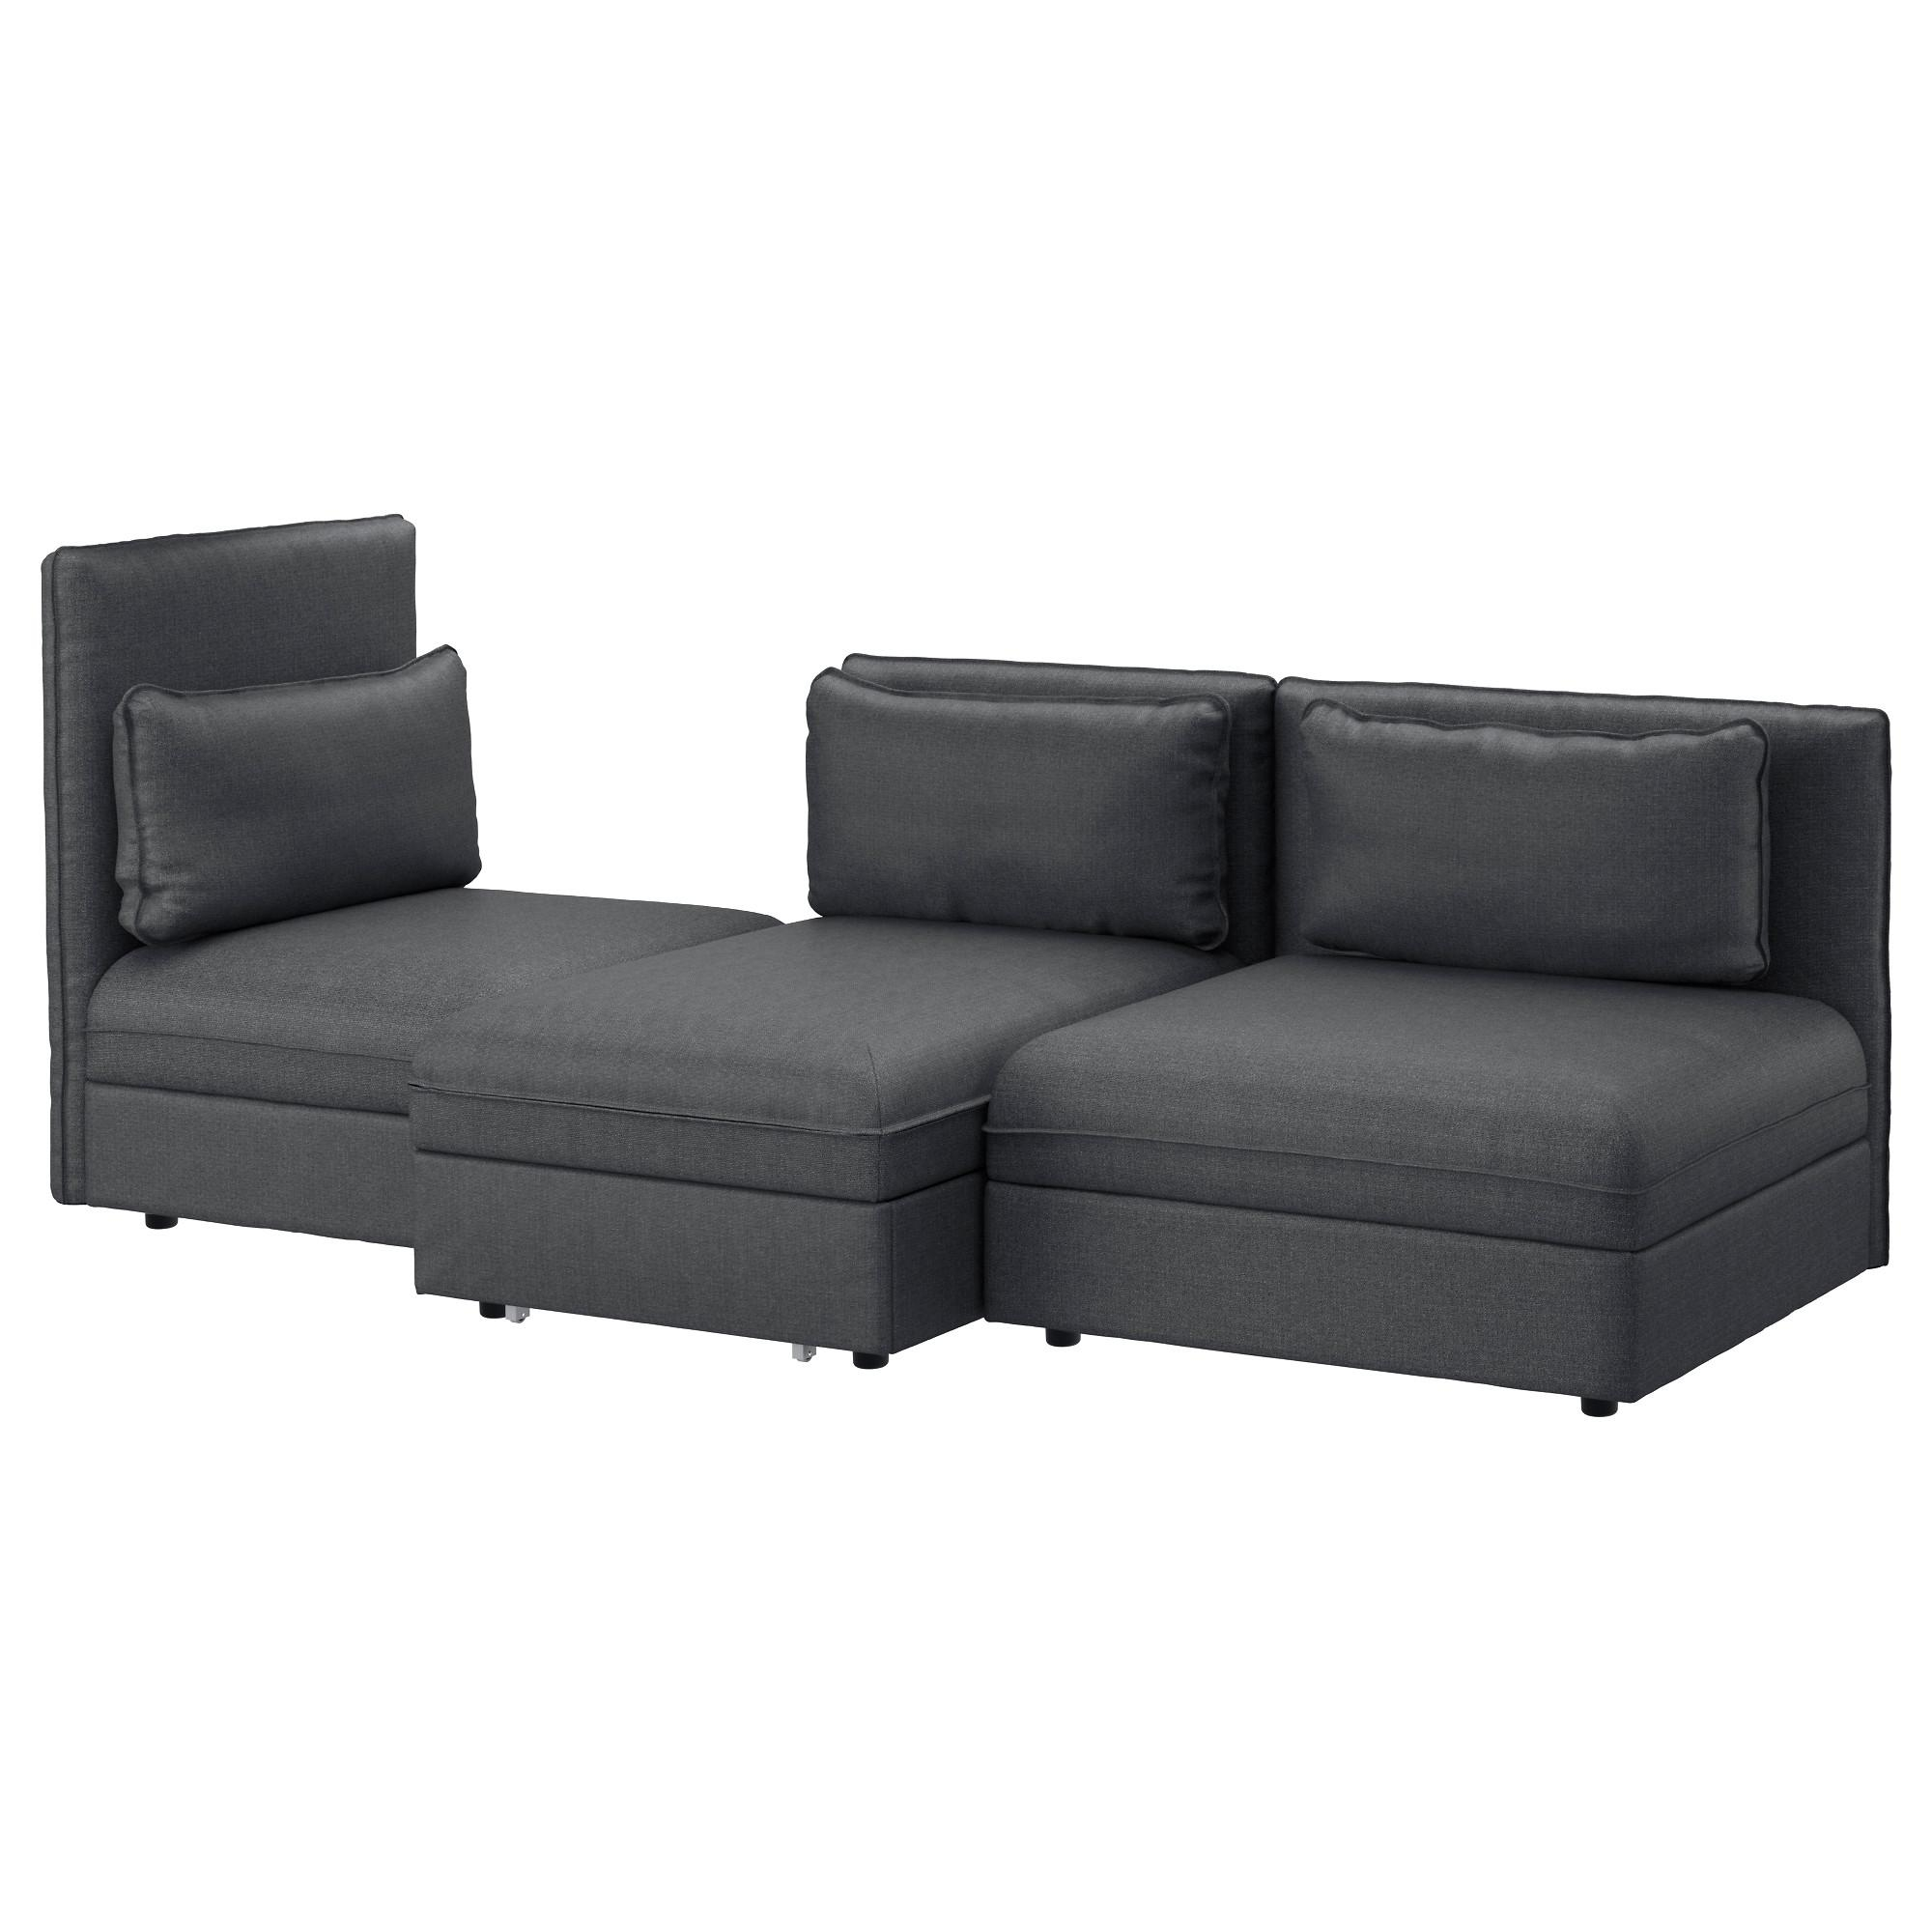 Vallentuna 3-Seat Sofa With Bed Hillared Dark Grey - Ikea inside Sofas With Beds